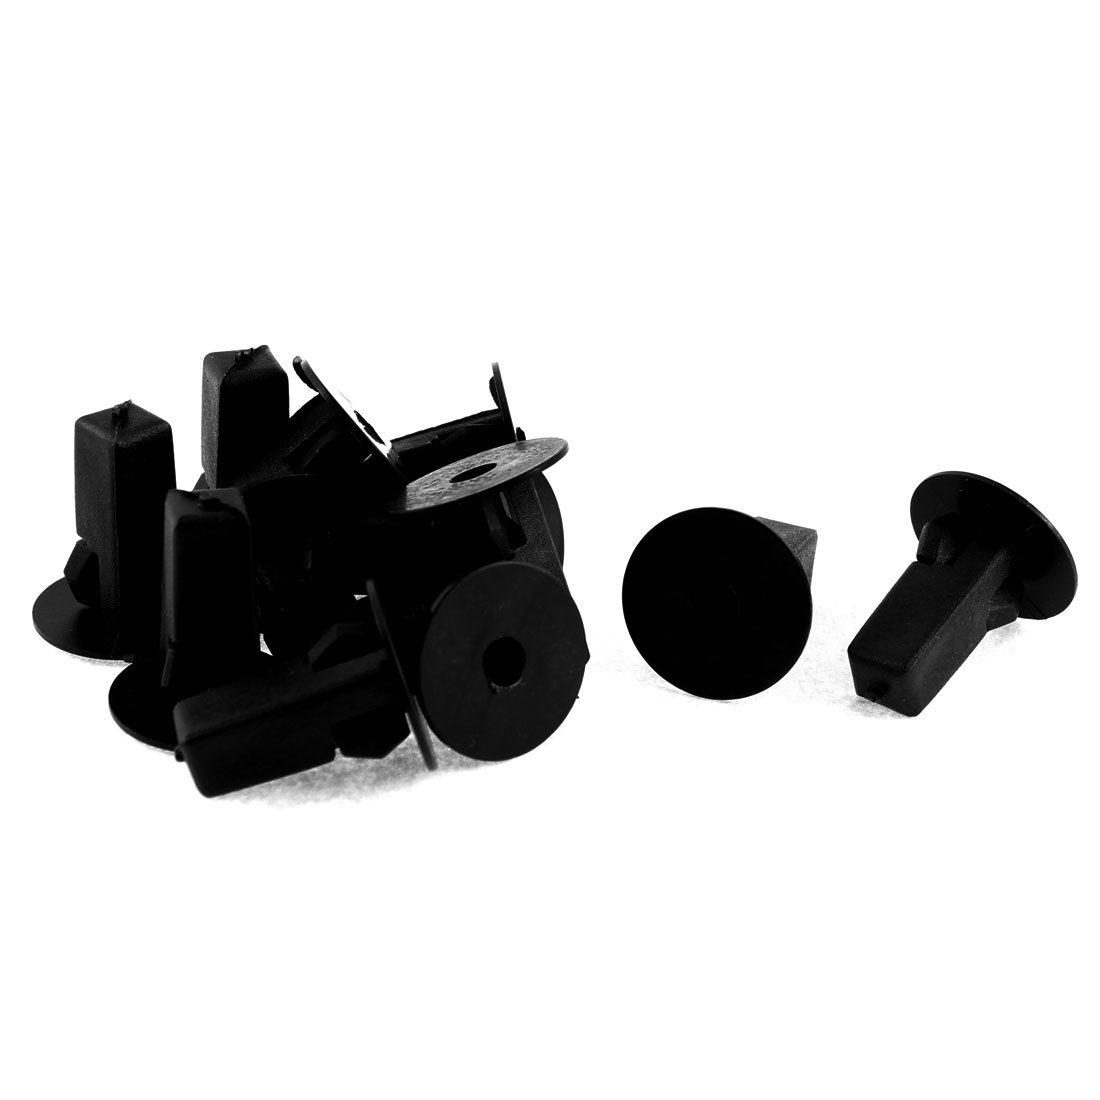 12 Pcs Fender Lining Plastic Retainer Clips for Toyota